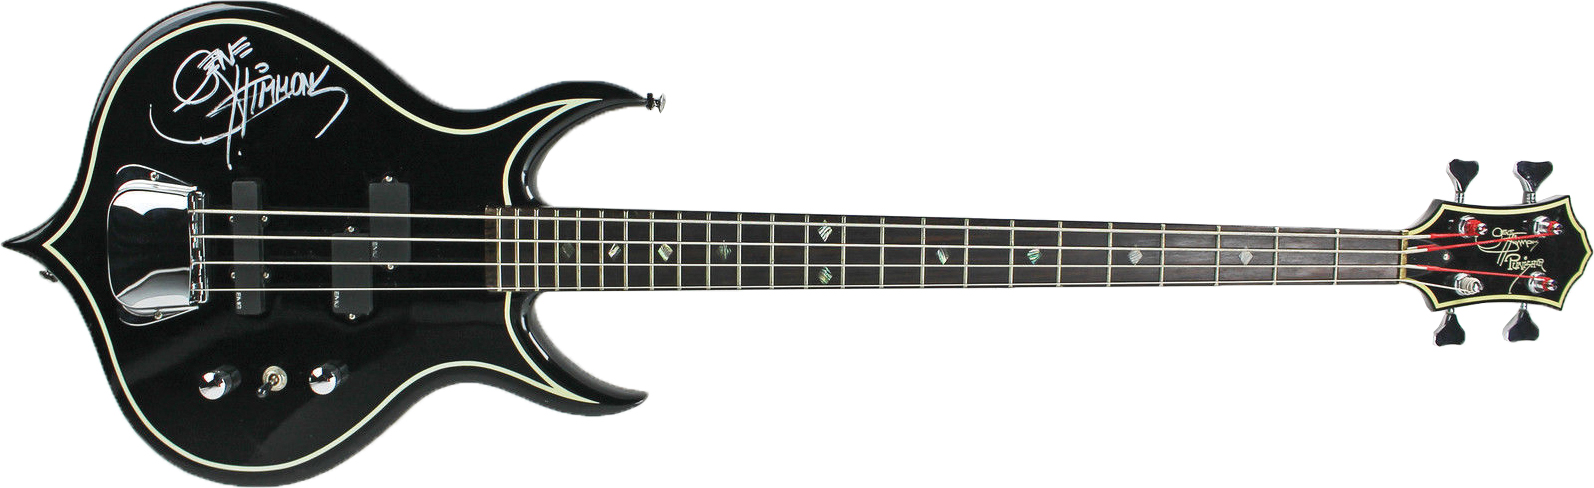 KISS Gene Simmons Awesome Signed Punisher Bass Guitar PSA DNA